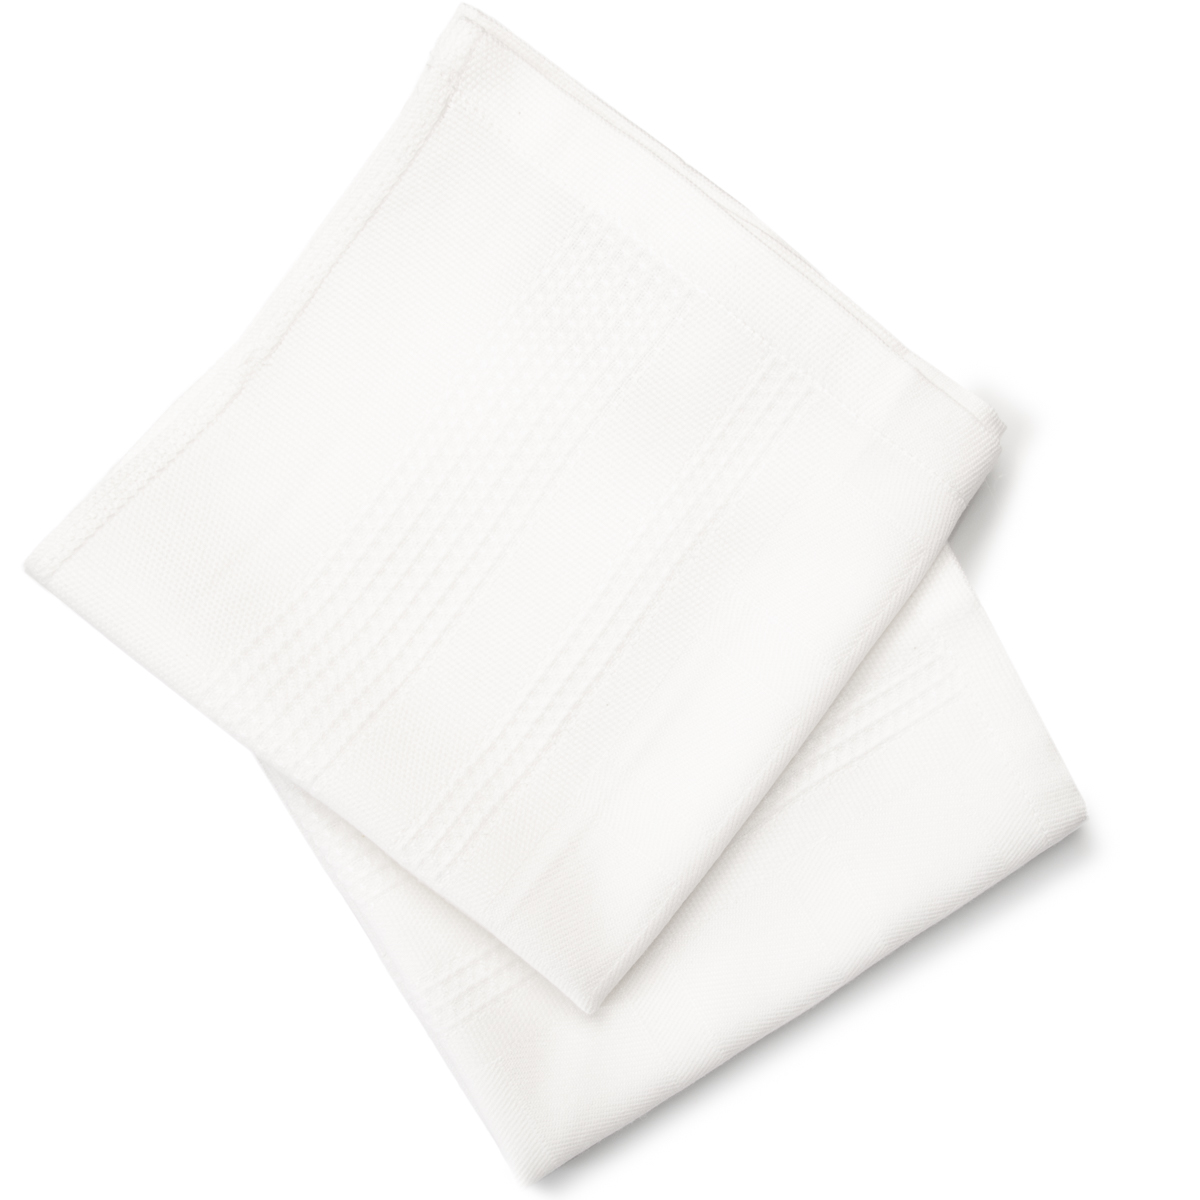 World/'s Best Dish Cloth 6 Pack, Assorted